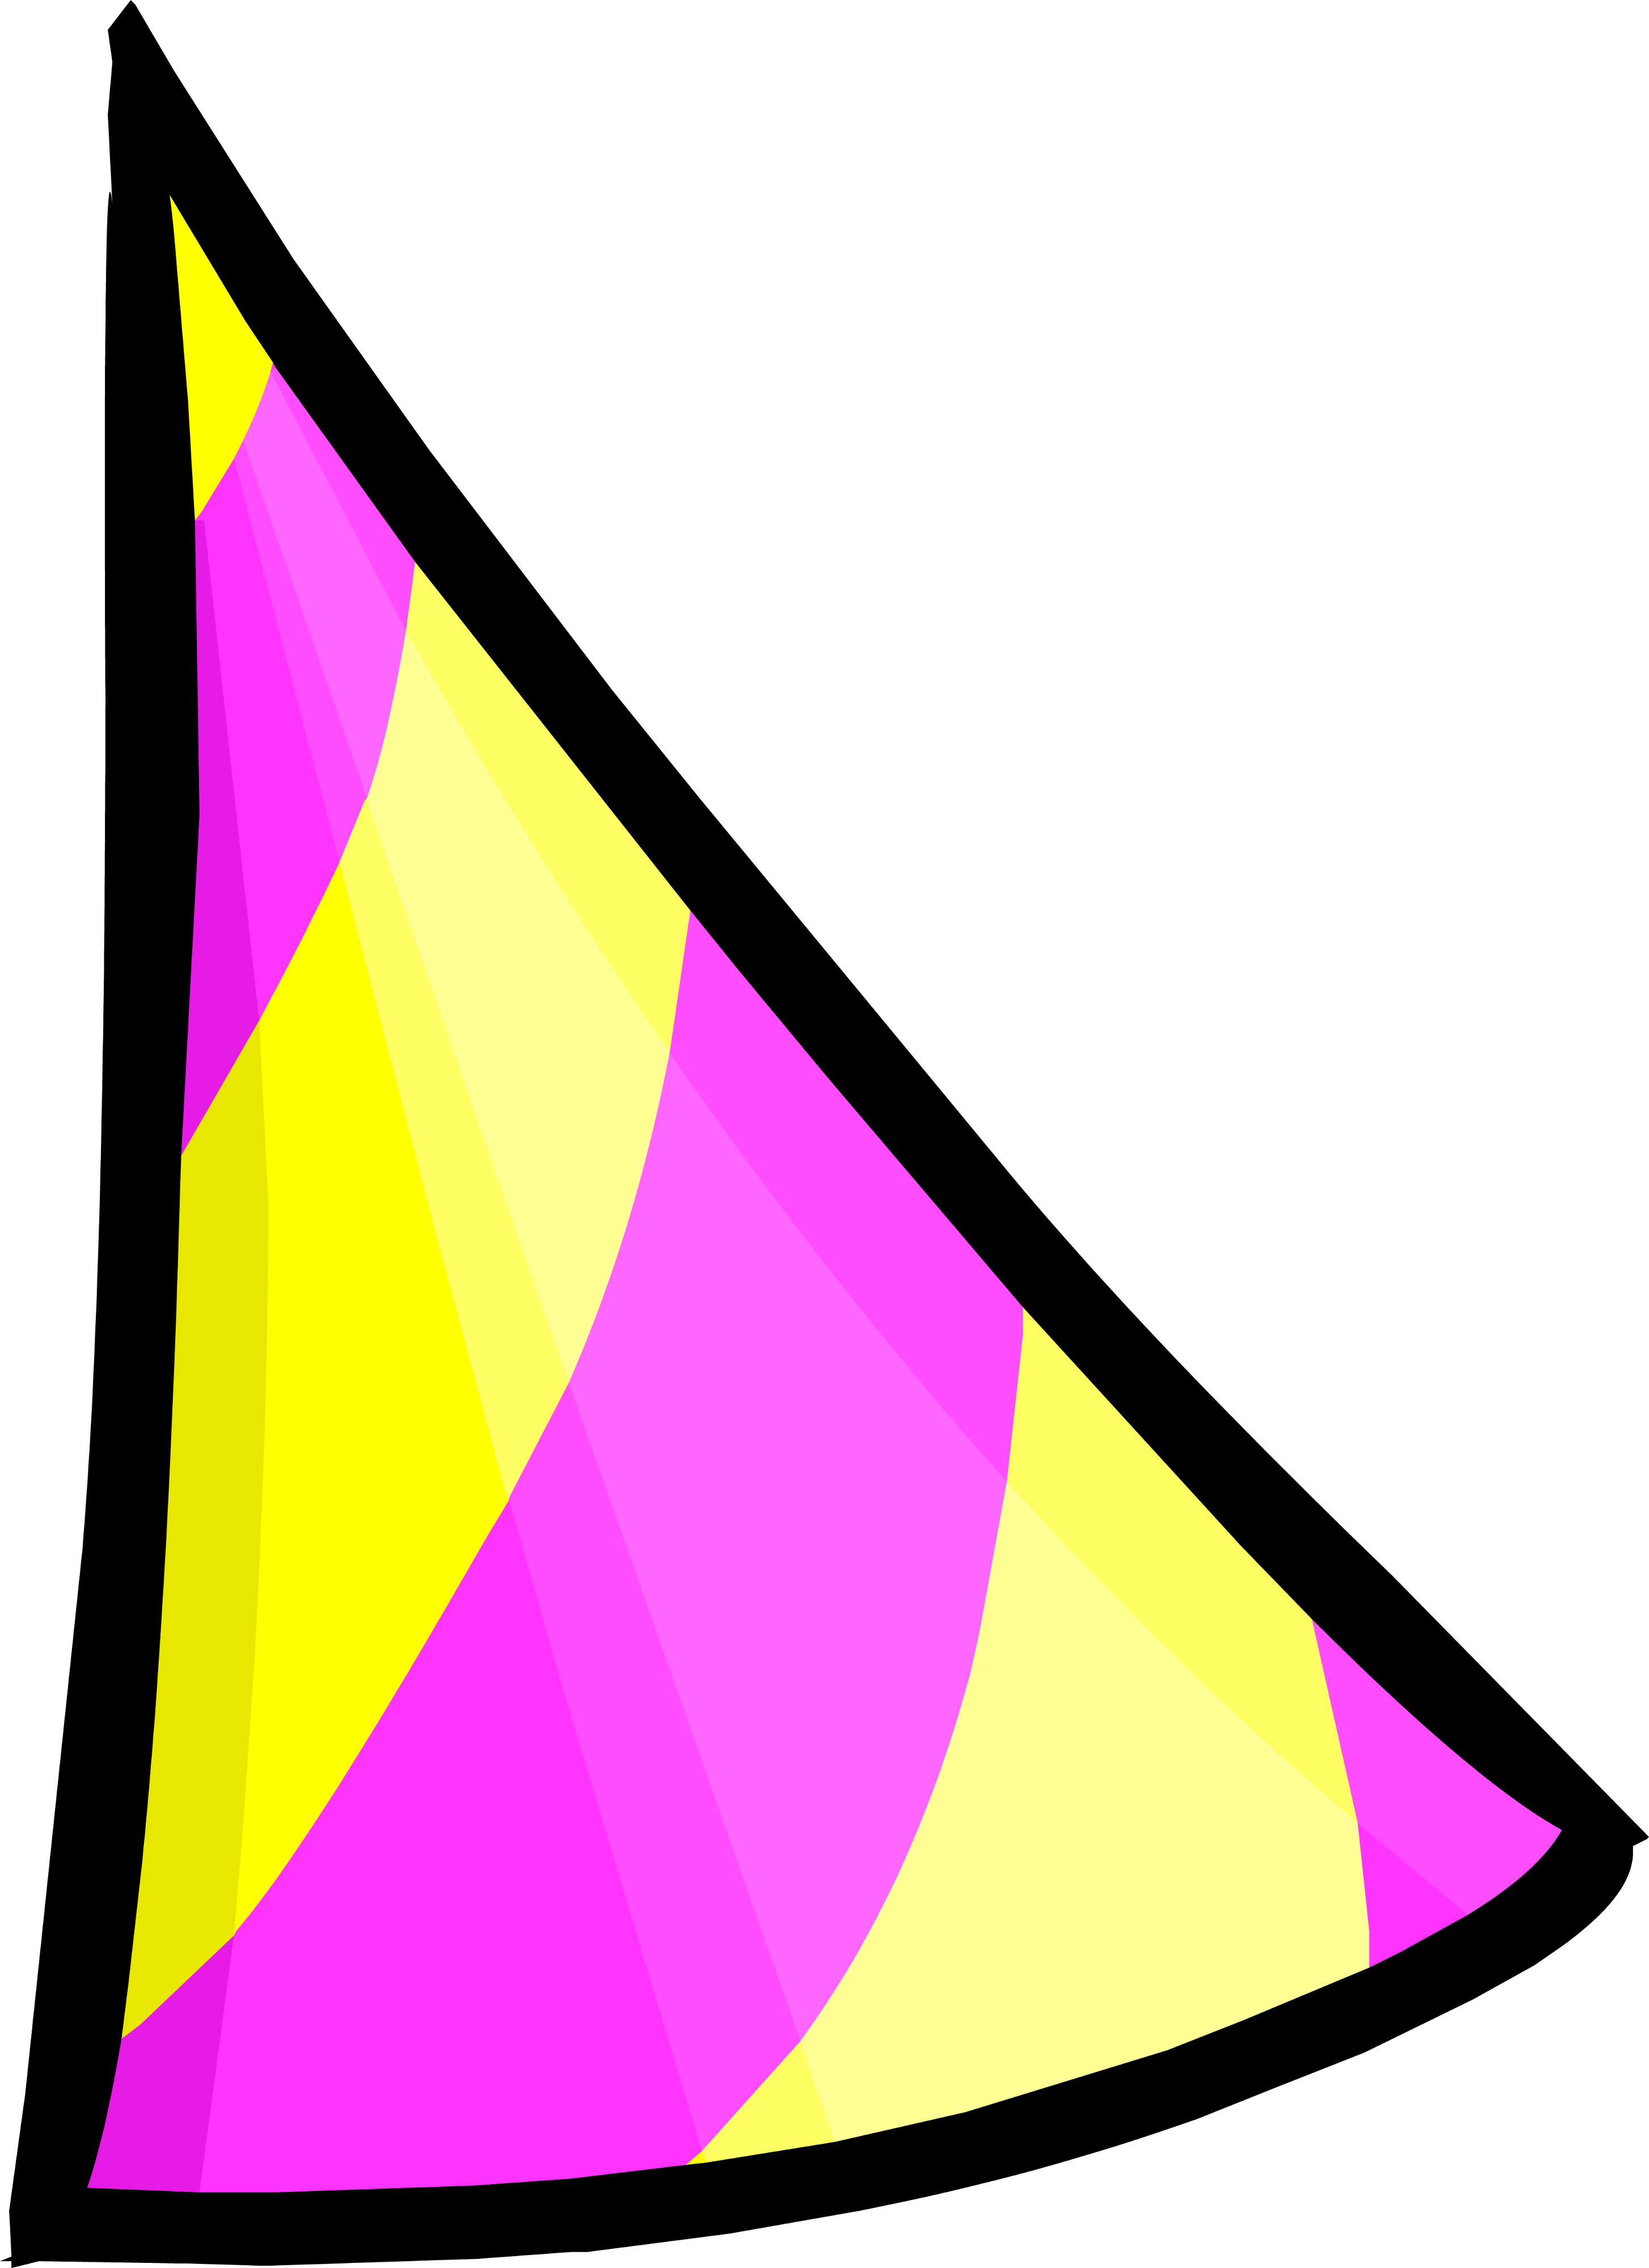 Shell clipart triangle object. Beta test party club